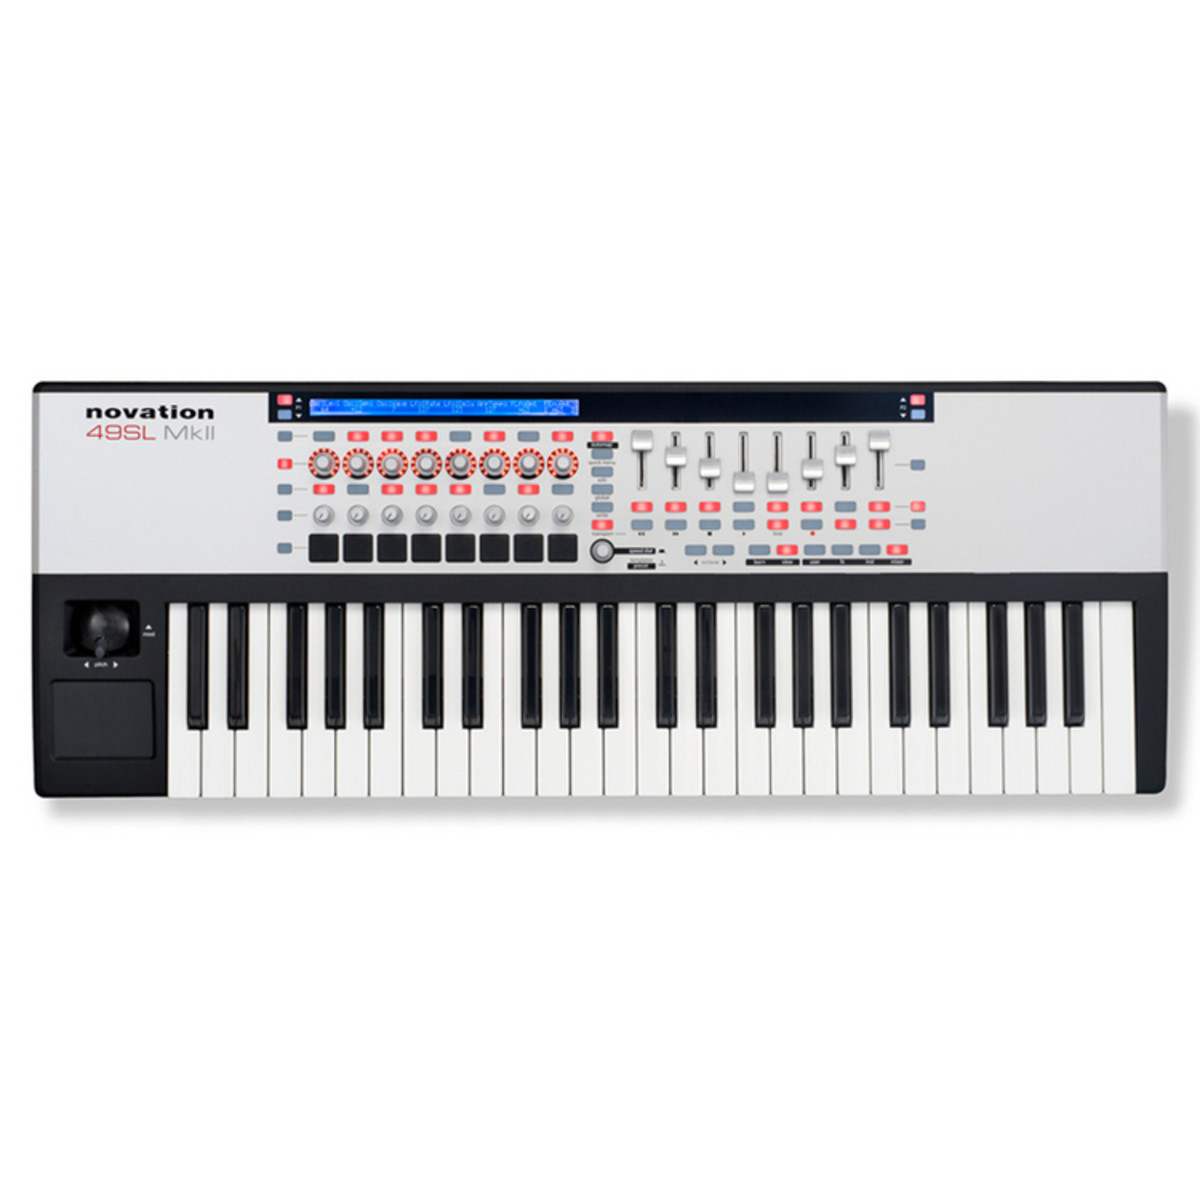 novation 49 sl mk2 midi controller keyboard at gear4music. Black Bedroom Furniture Sets. Home Design Ideas